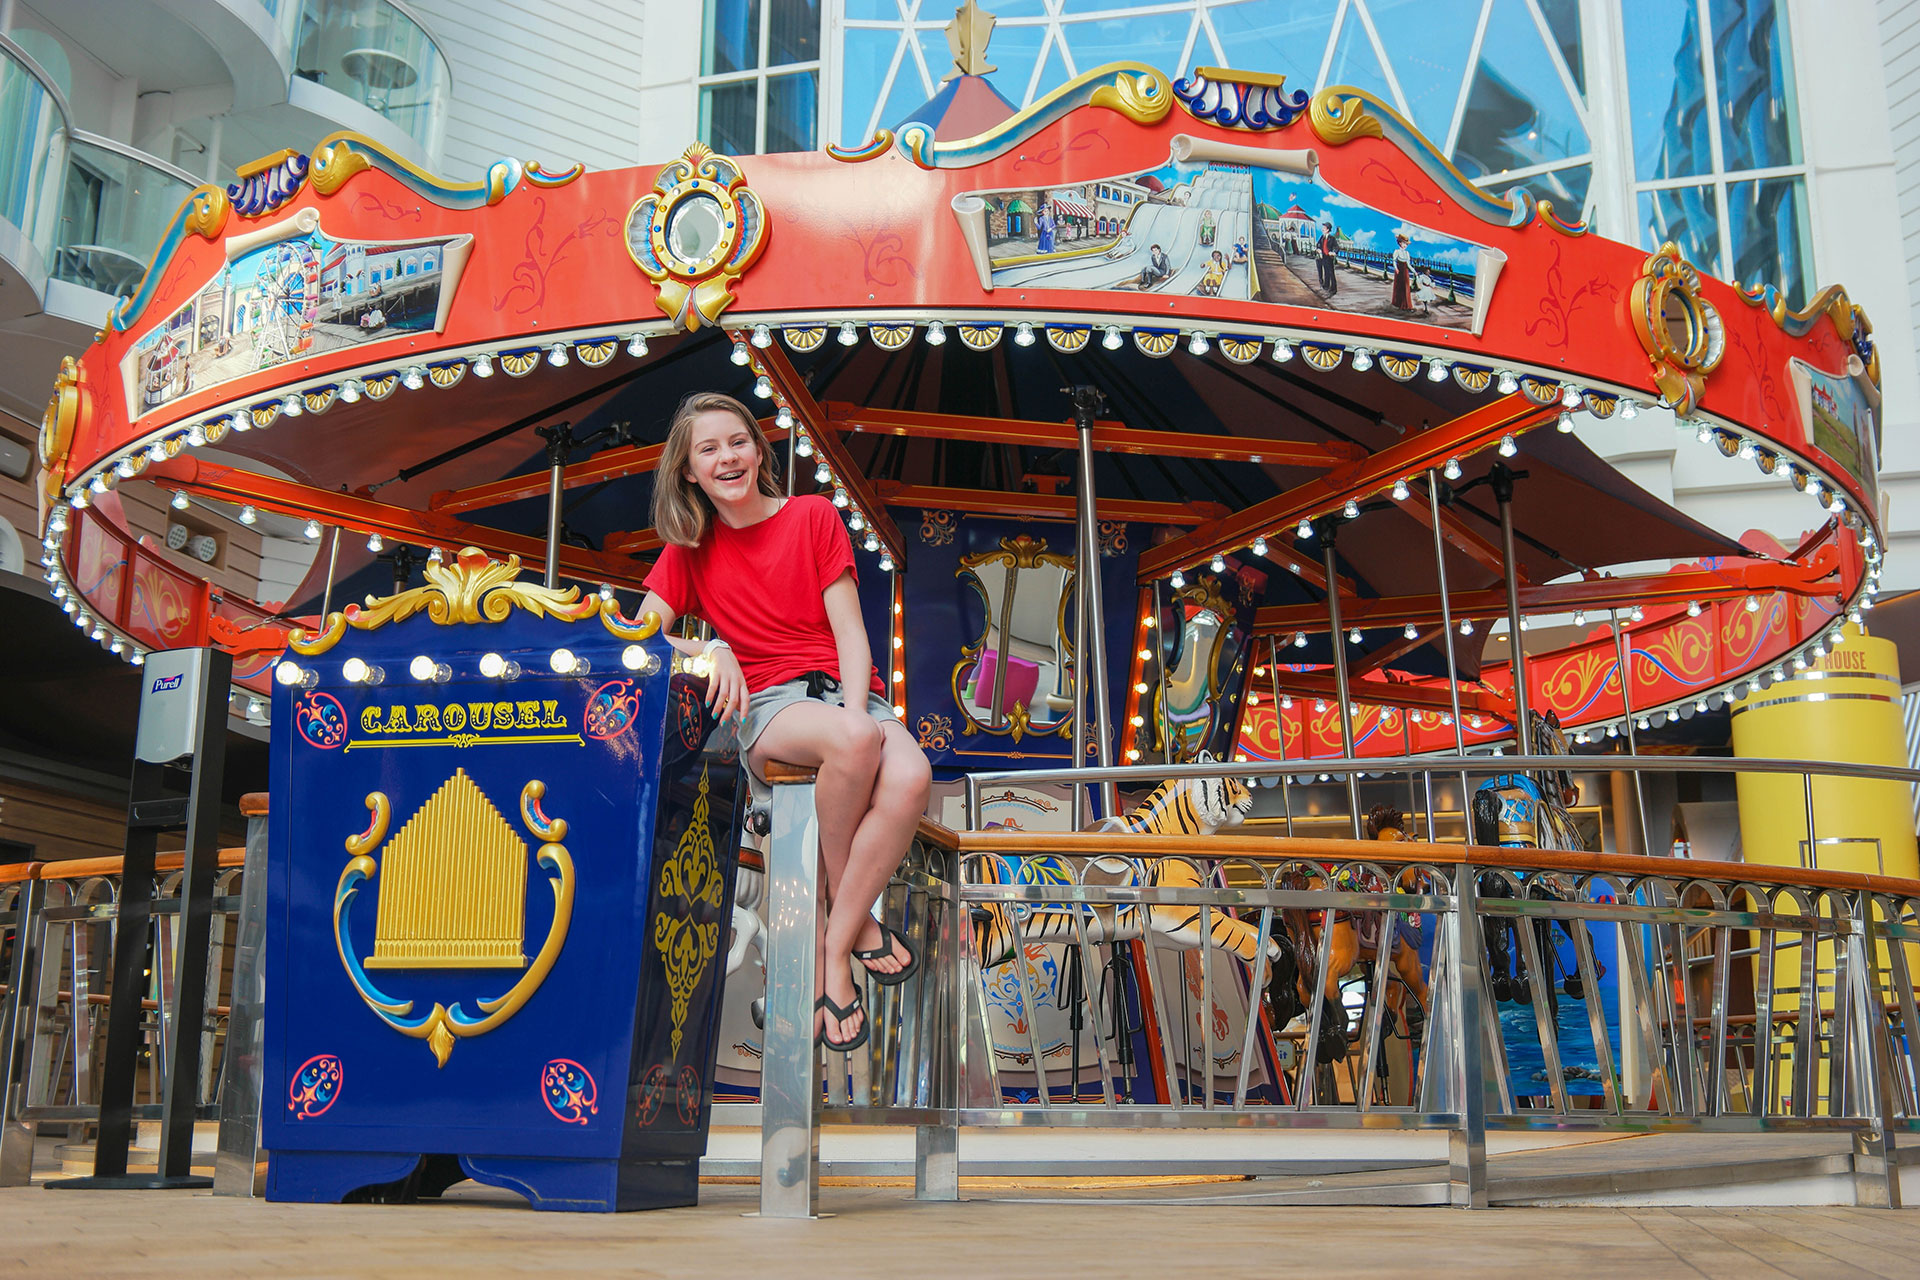 Teen Girl in Front of Carousel on Royal Caribbean's Symphony of the Seas